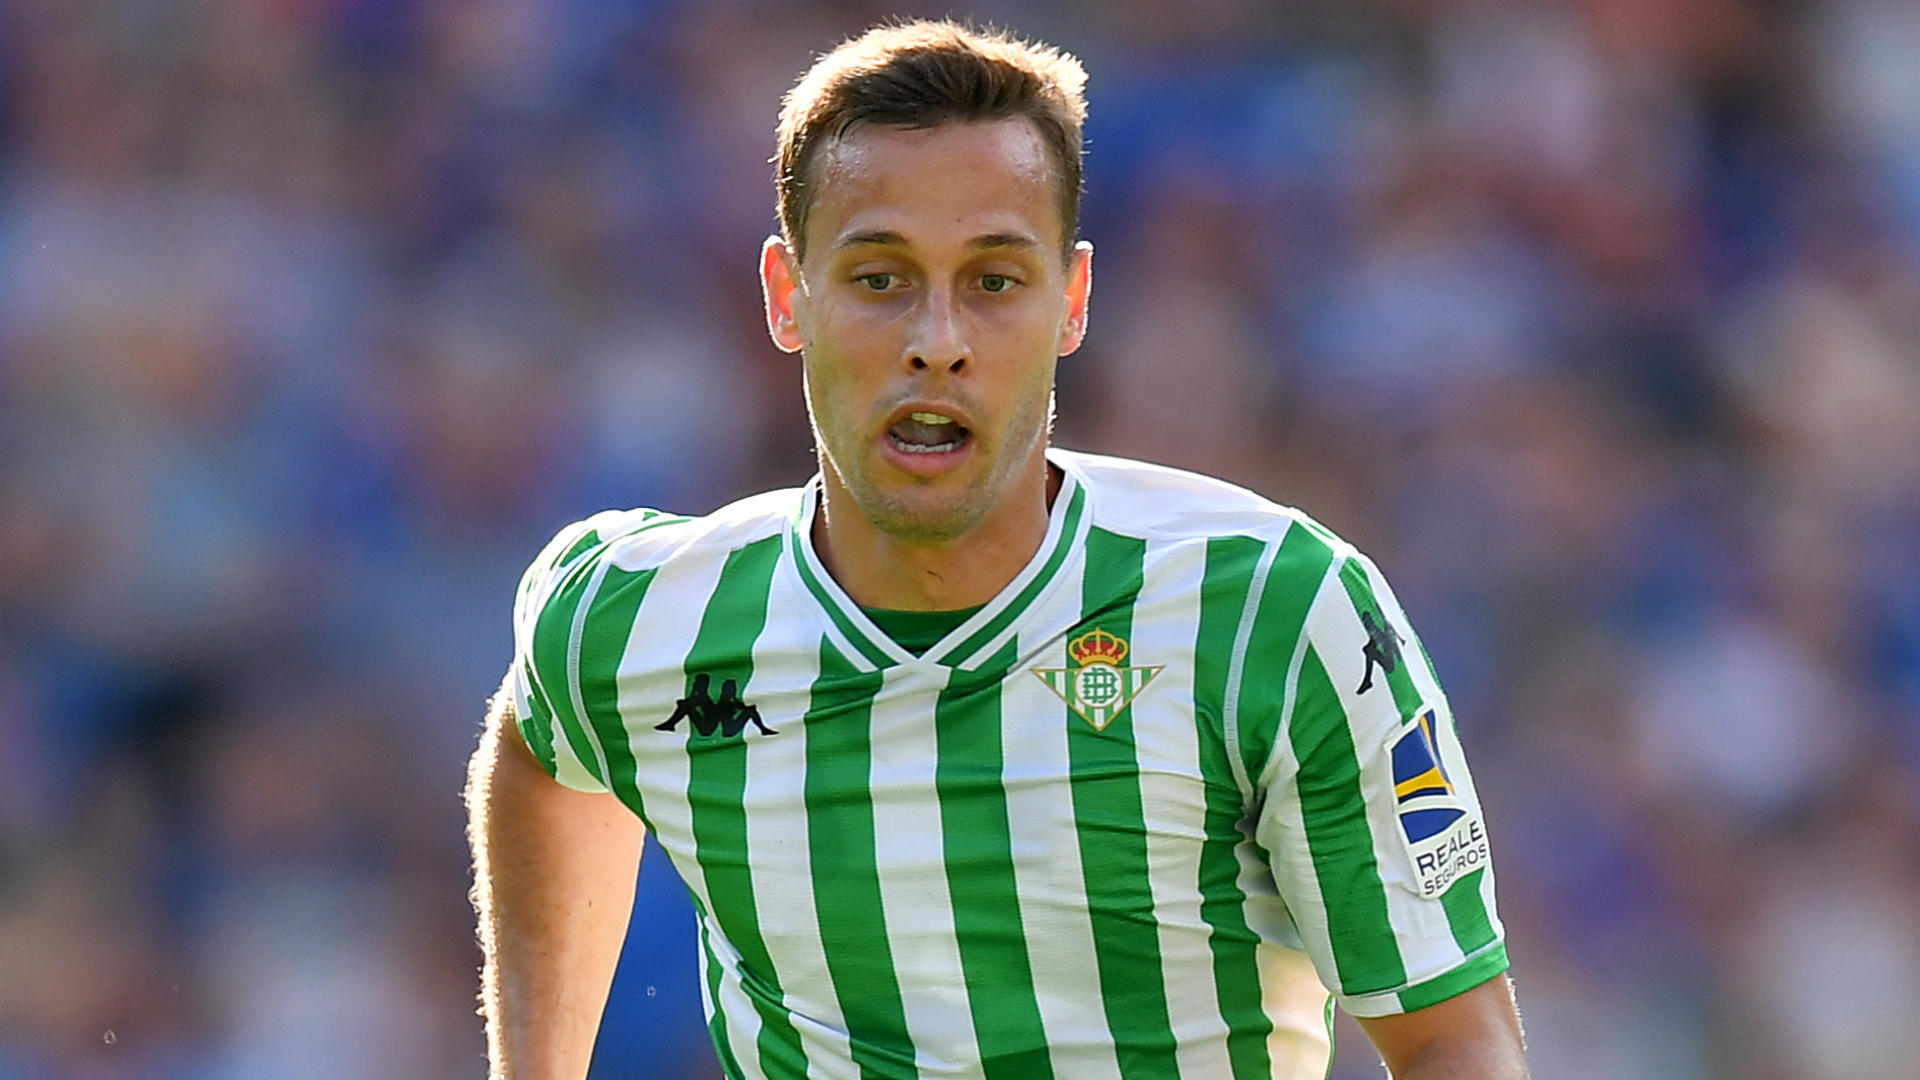 Canales had given up on Spain dream